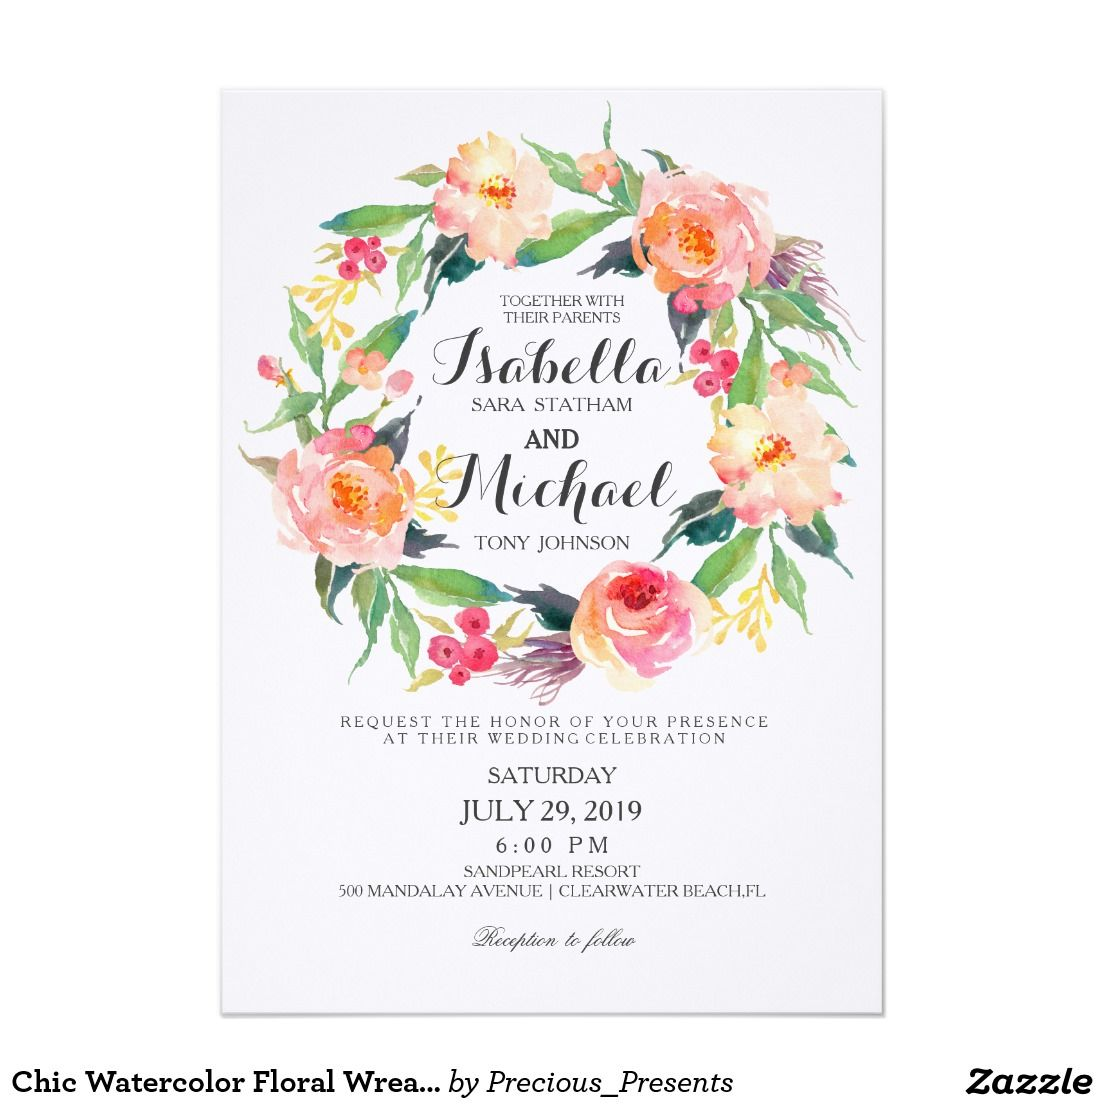 Chic Watercolor Floral Wreath Wedding Invitation Floral Wreath